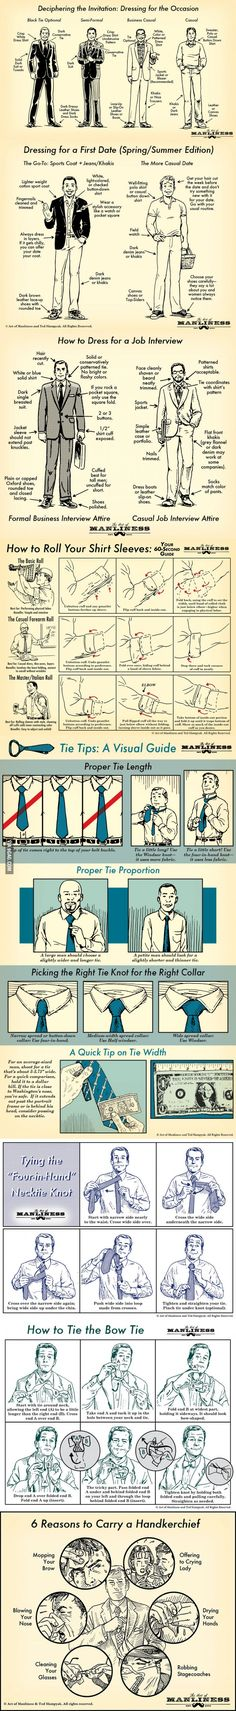 Let's Dress Manly! Men's guidelines for dressing to the occasion.